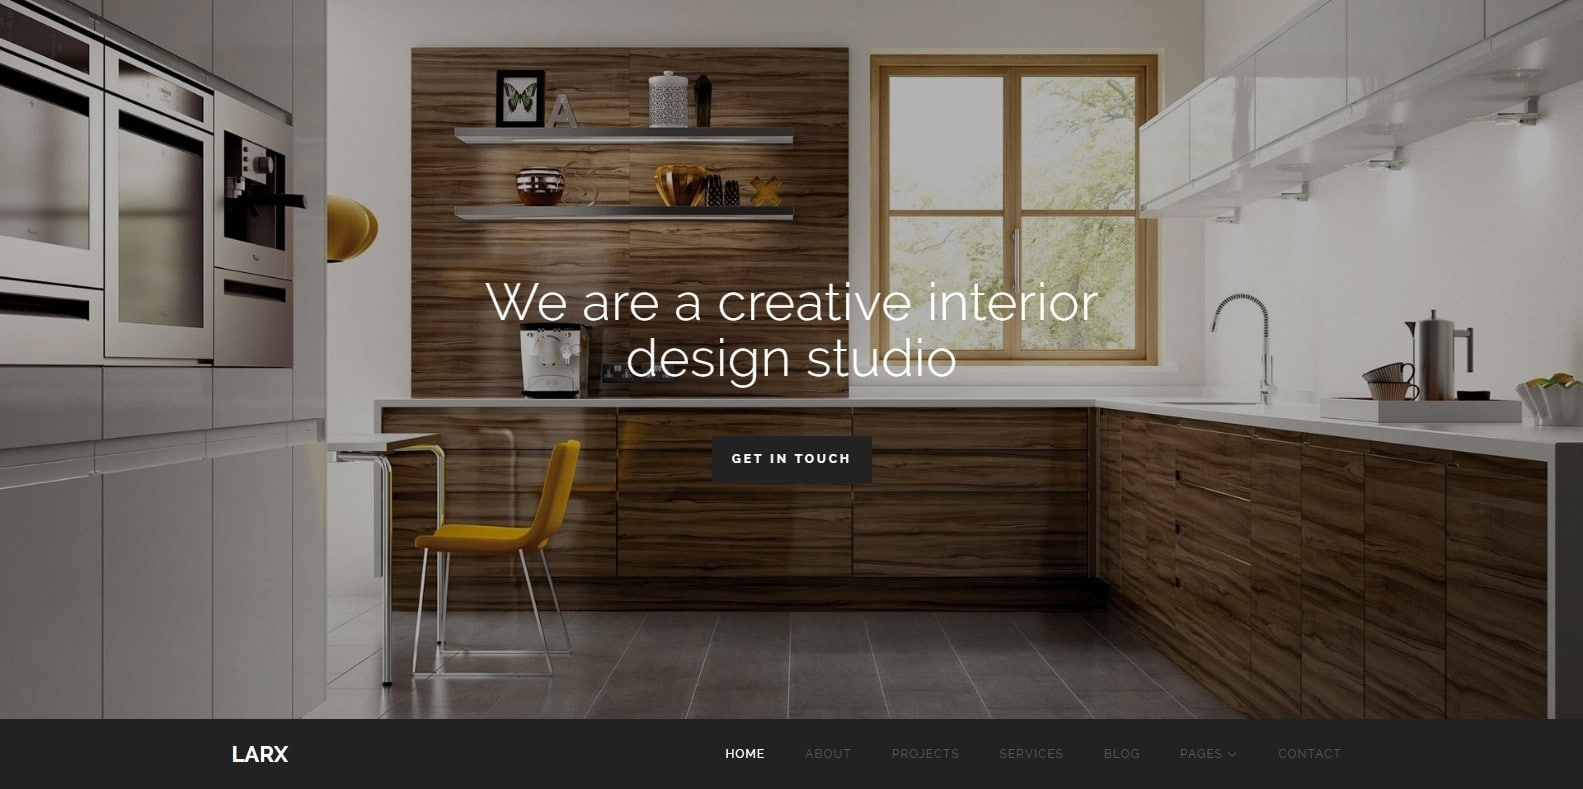 larx-interior-design-template